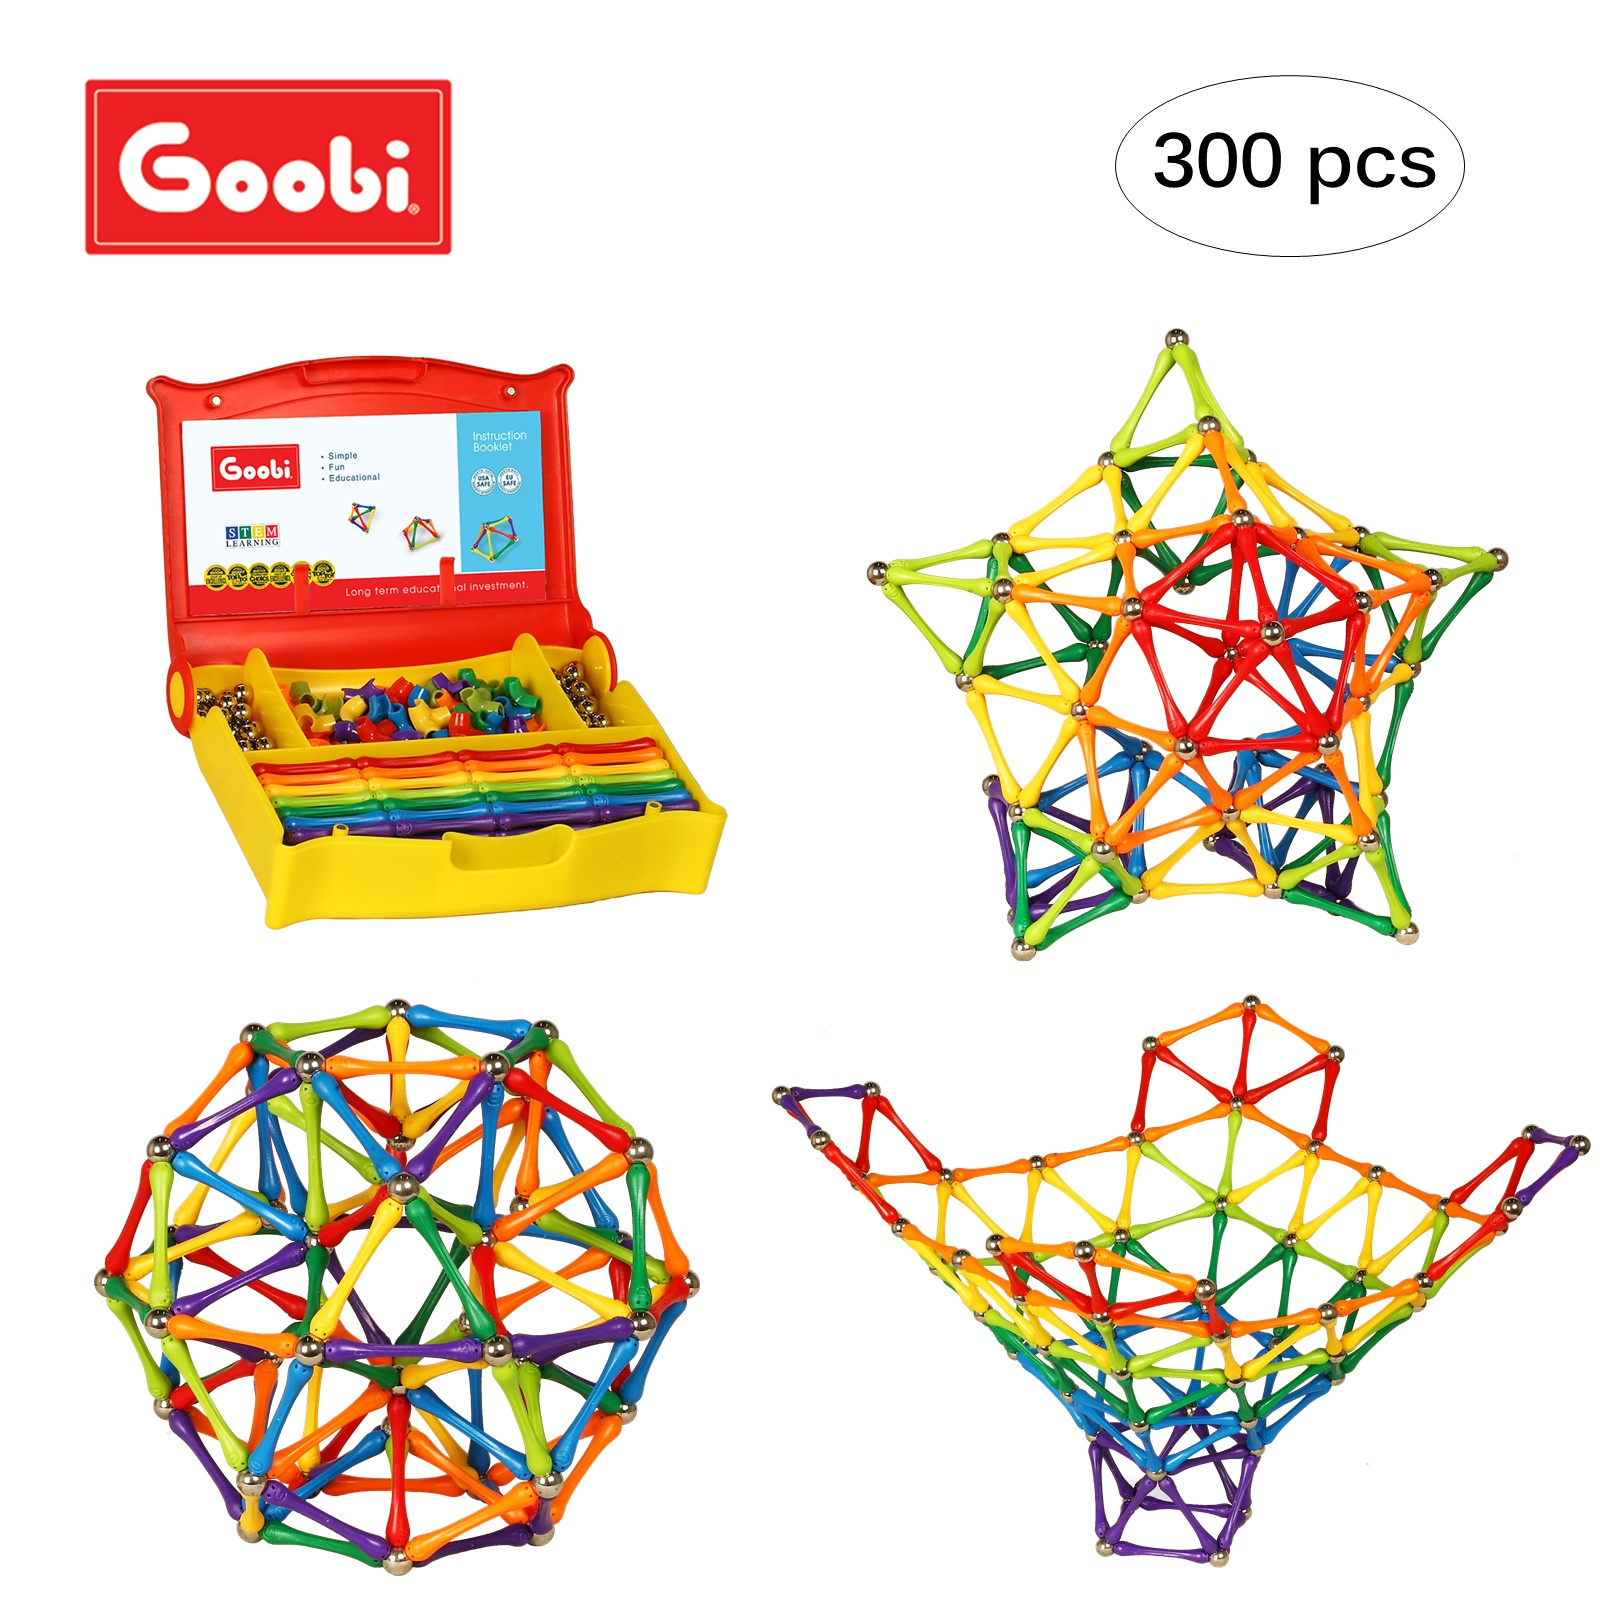 Goobi 300 Piece Construction Set Building Toy Active Play Sticks STEM Learning Creativity IMagination... by Goobi